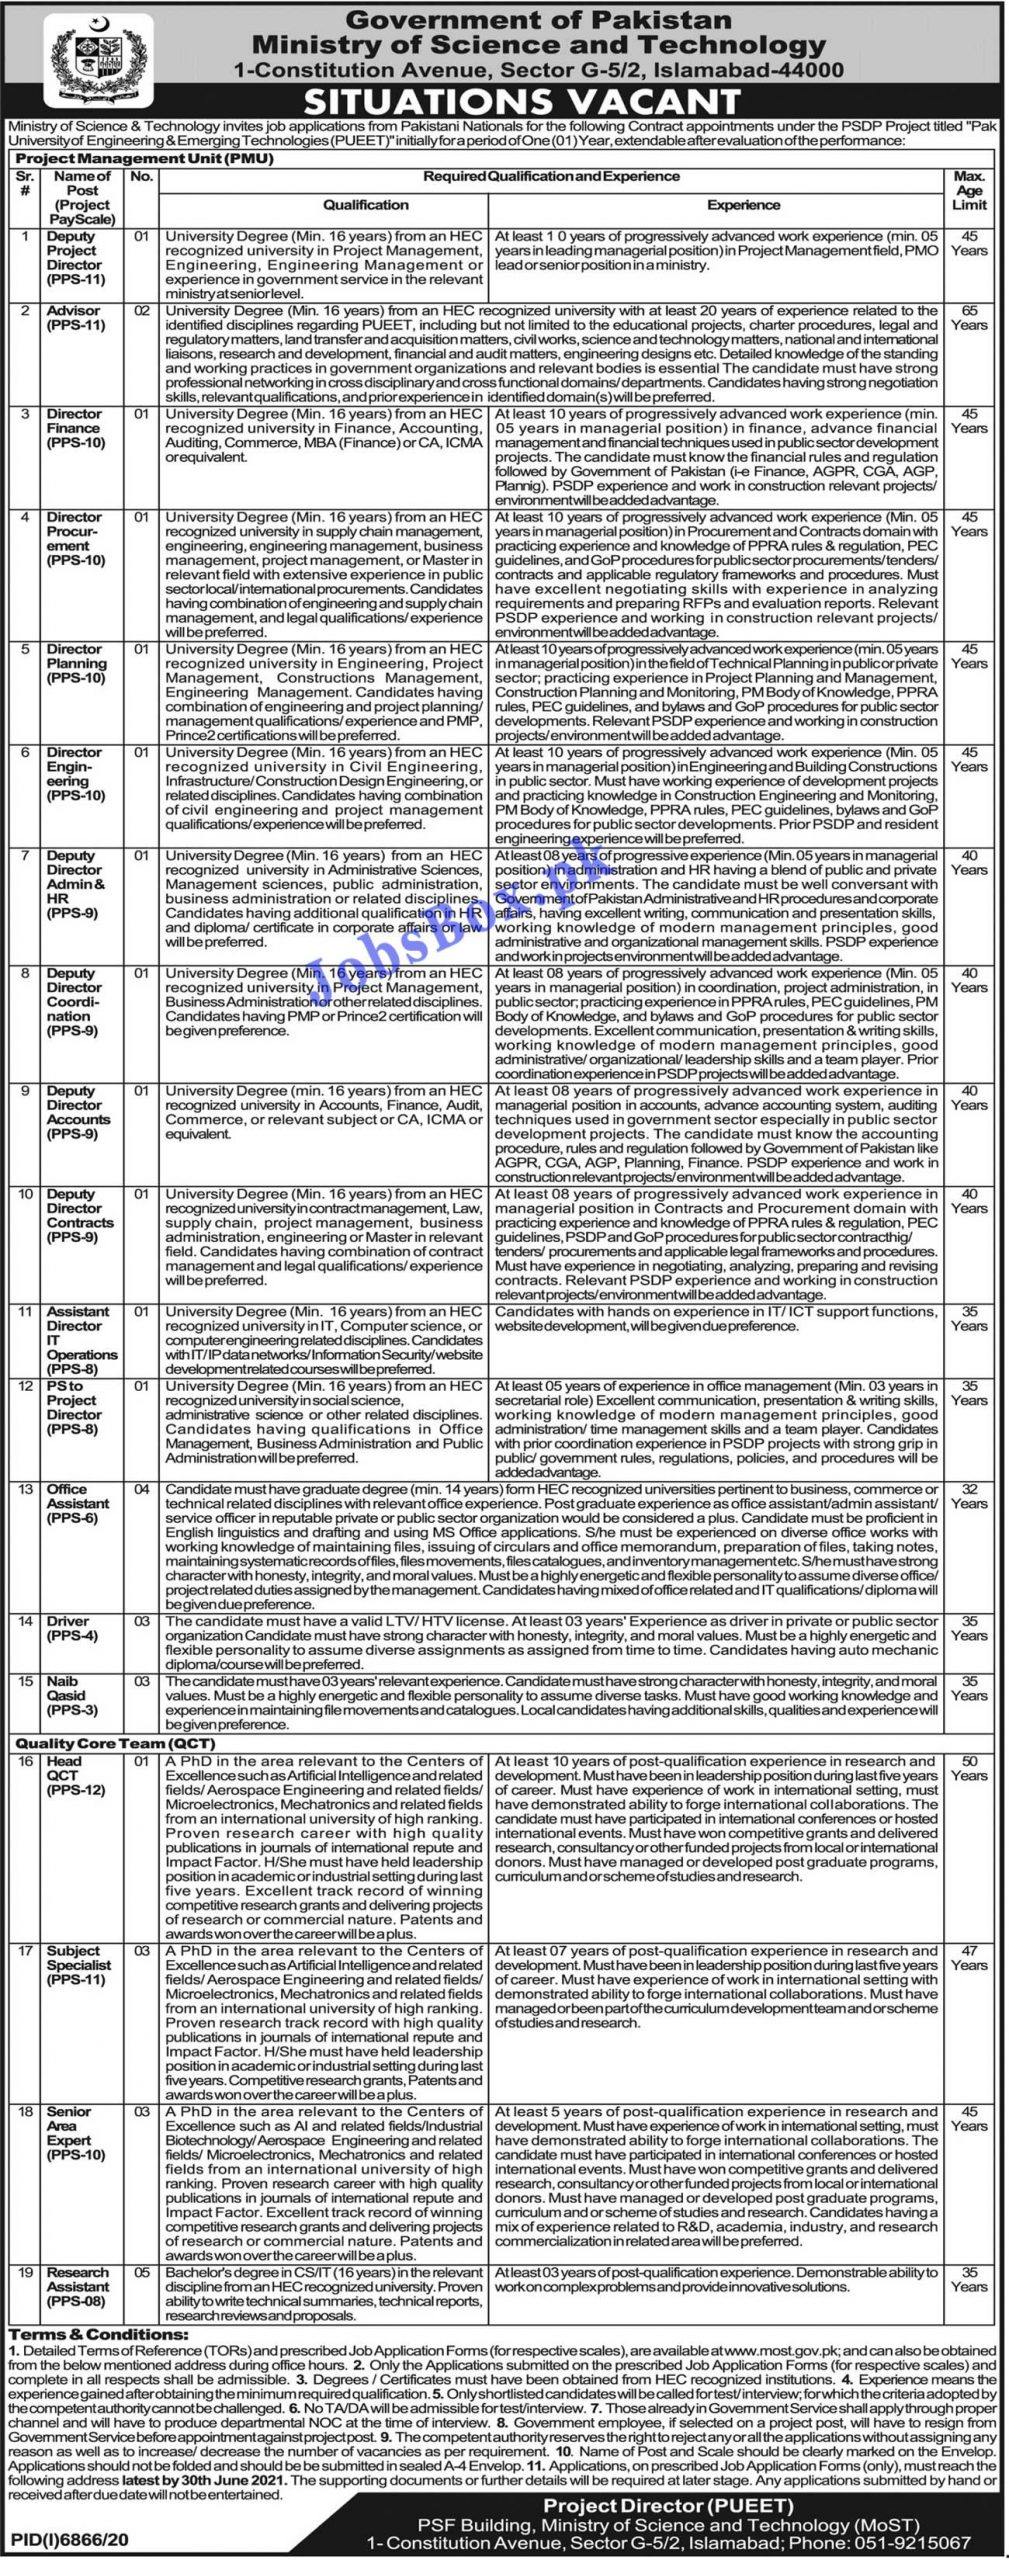 www.most.gov.pk - Ministry of Science & Technology MOST Jobs 2021 Latest Advertisement